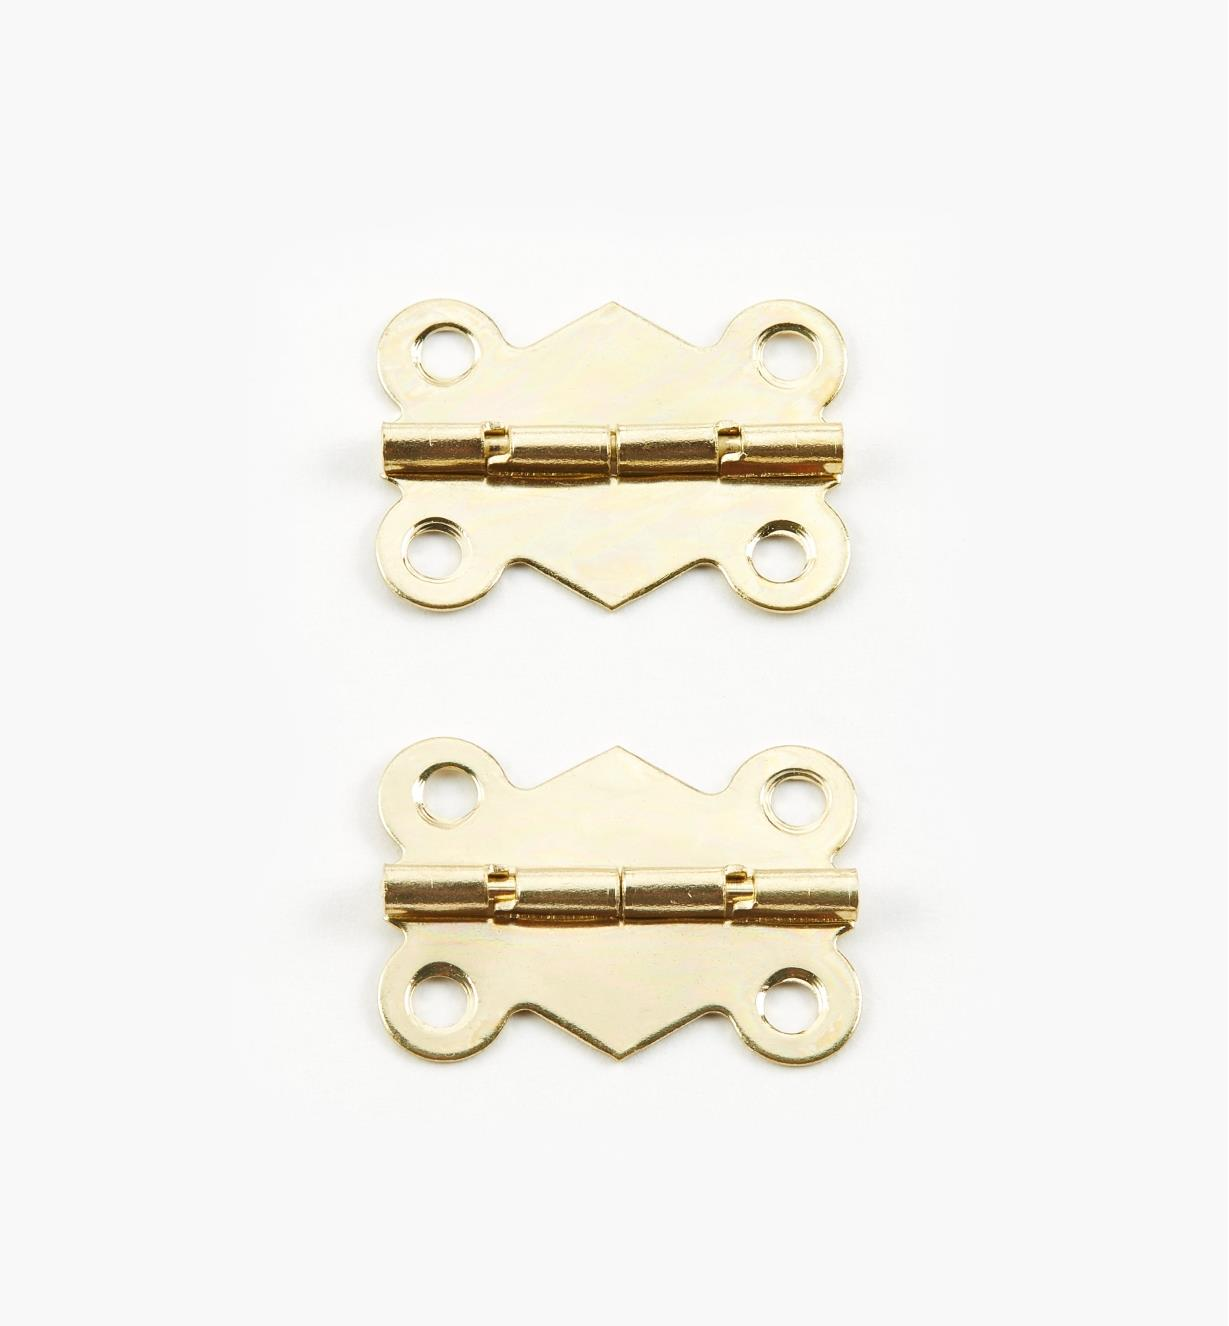 00D8010 - 25mm x 19mm Decorative Stop Hinges, pr.